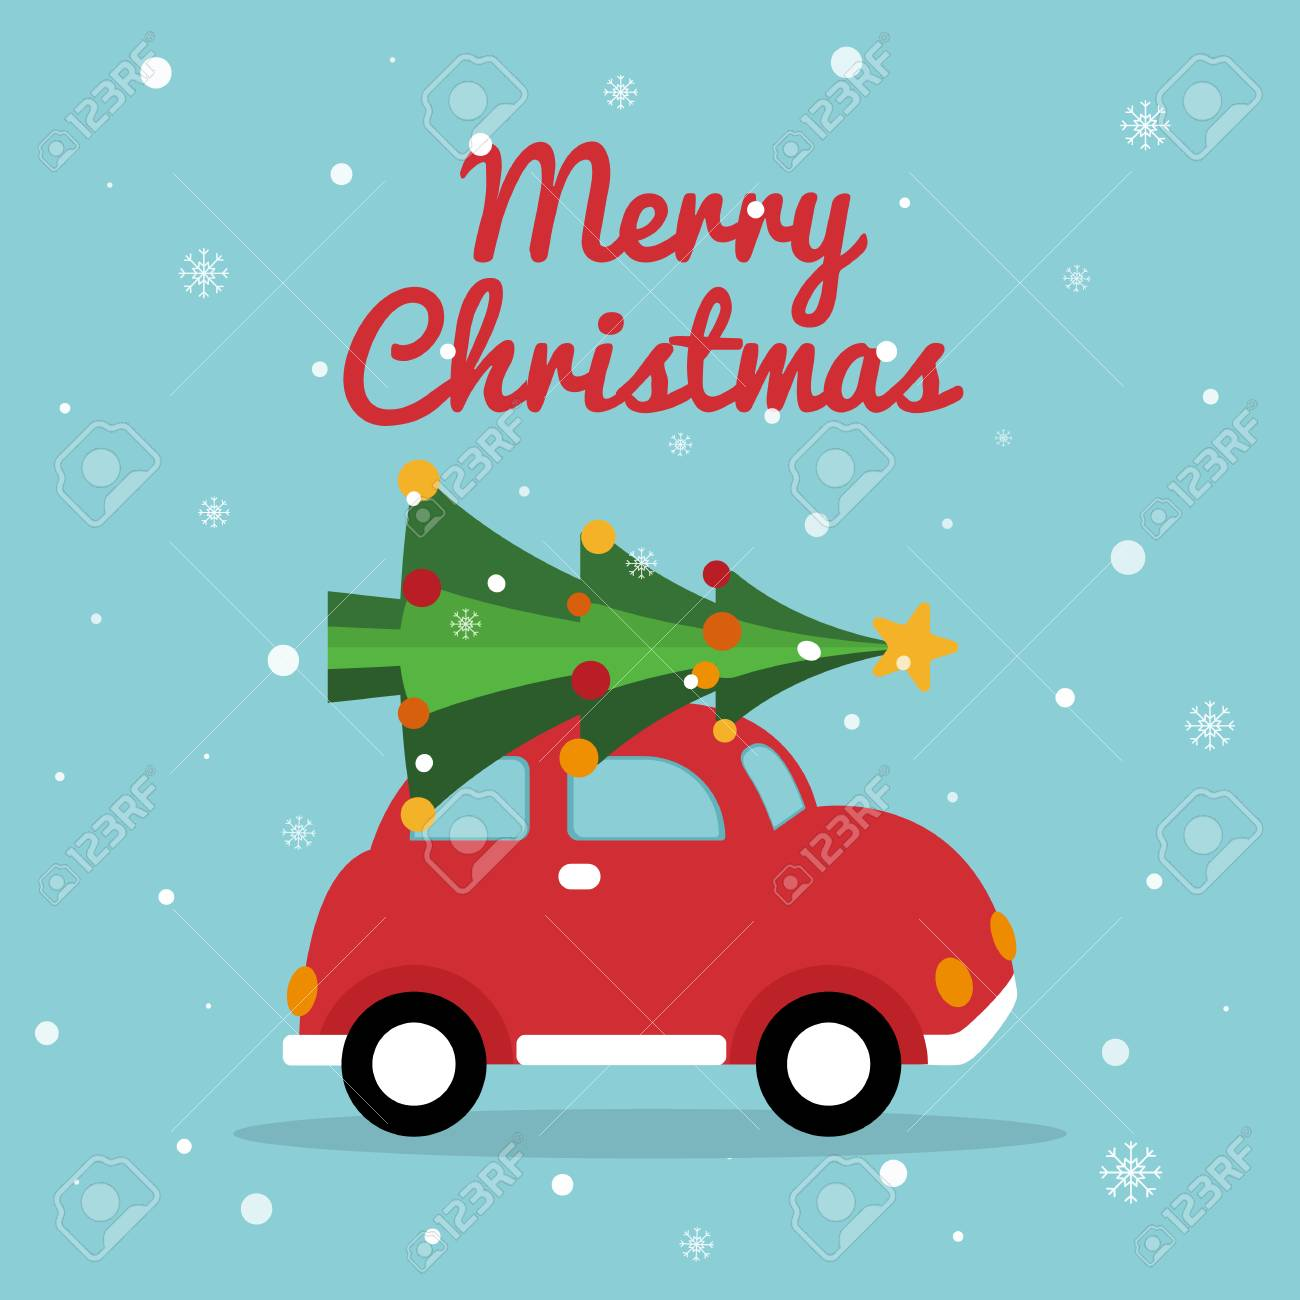 Christmas Retro Car Merry Christmas Card With Red Car Bright Royalty Free Cliparts Vectors And Stock Illustration Image 126199660